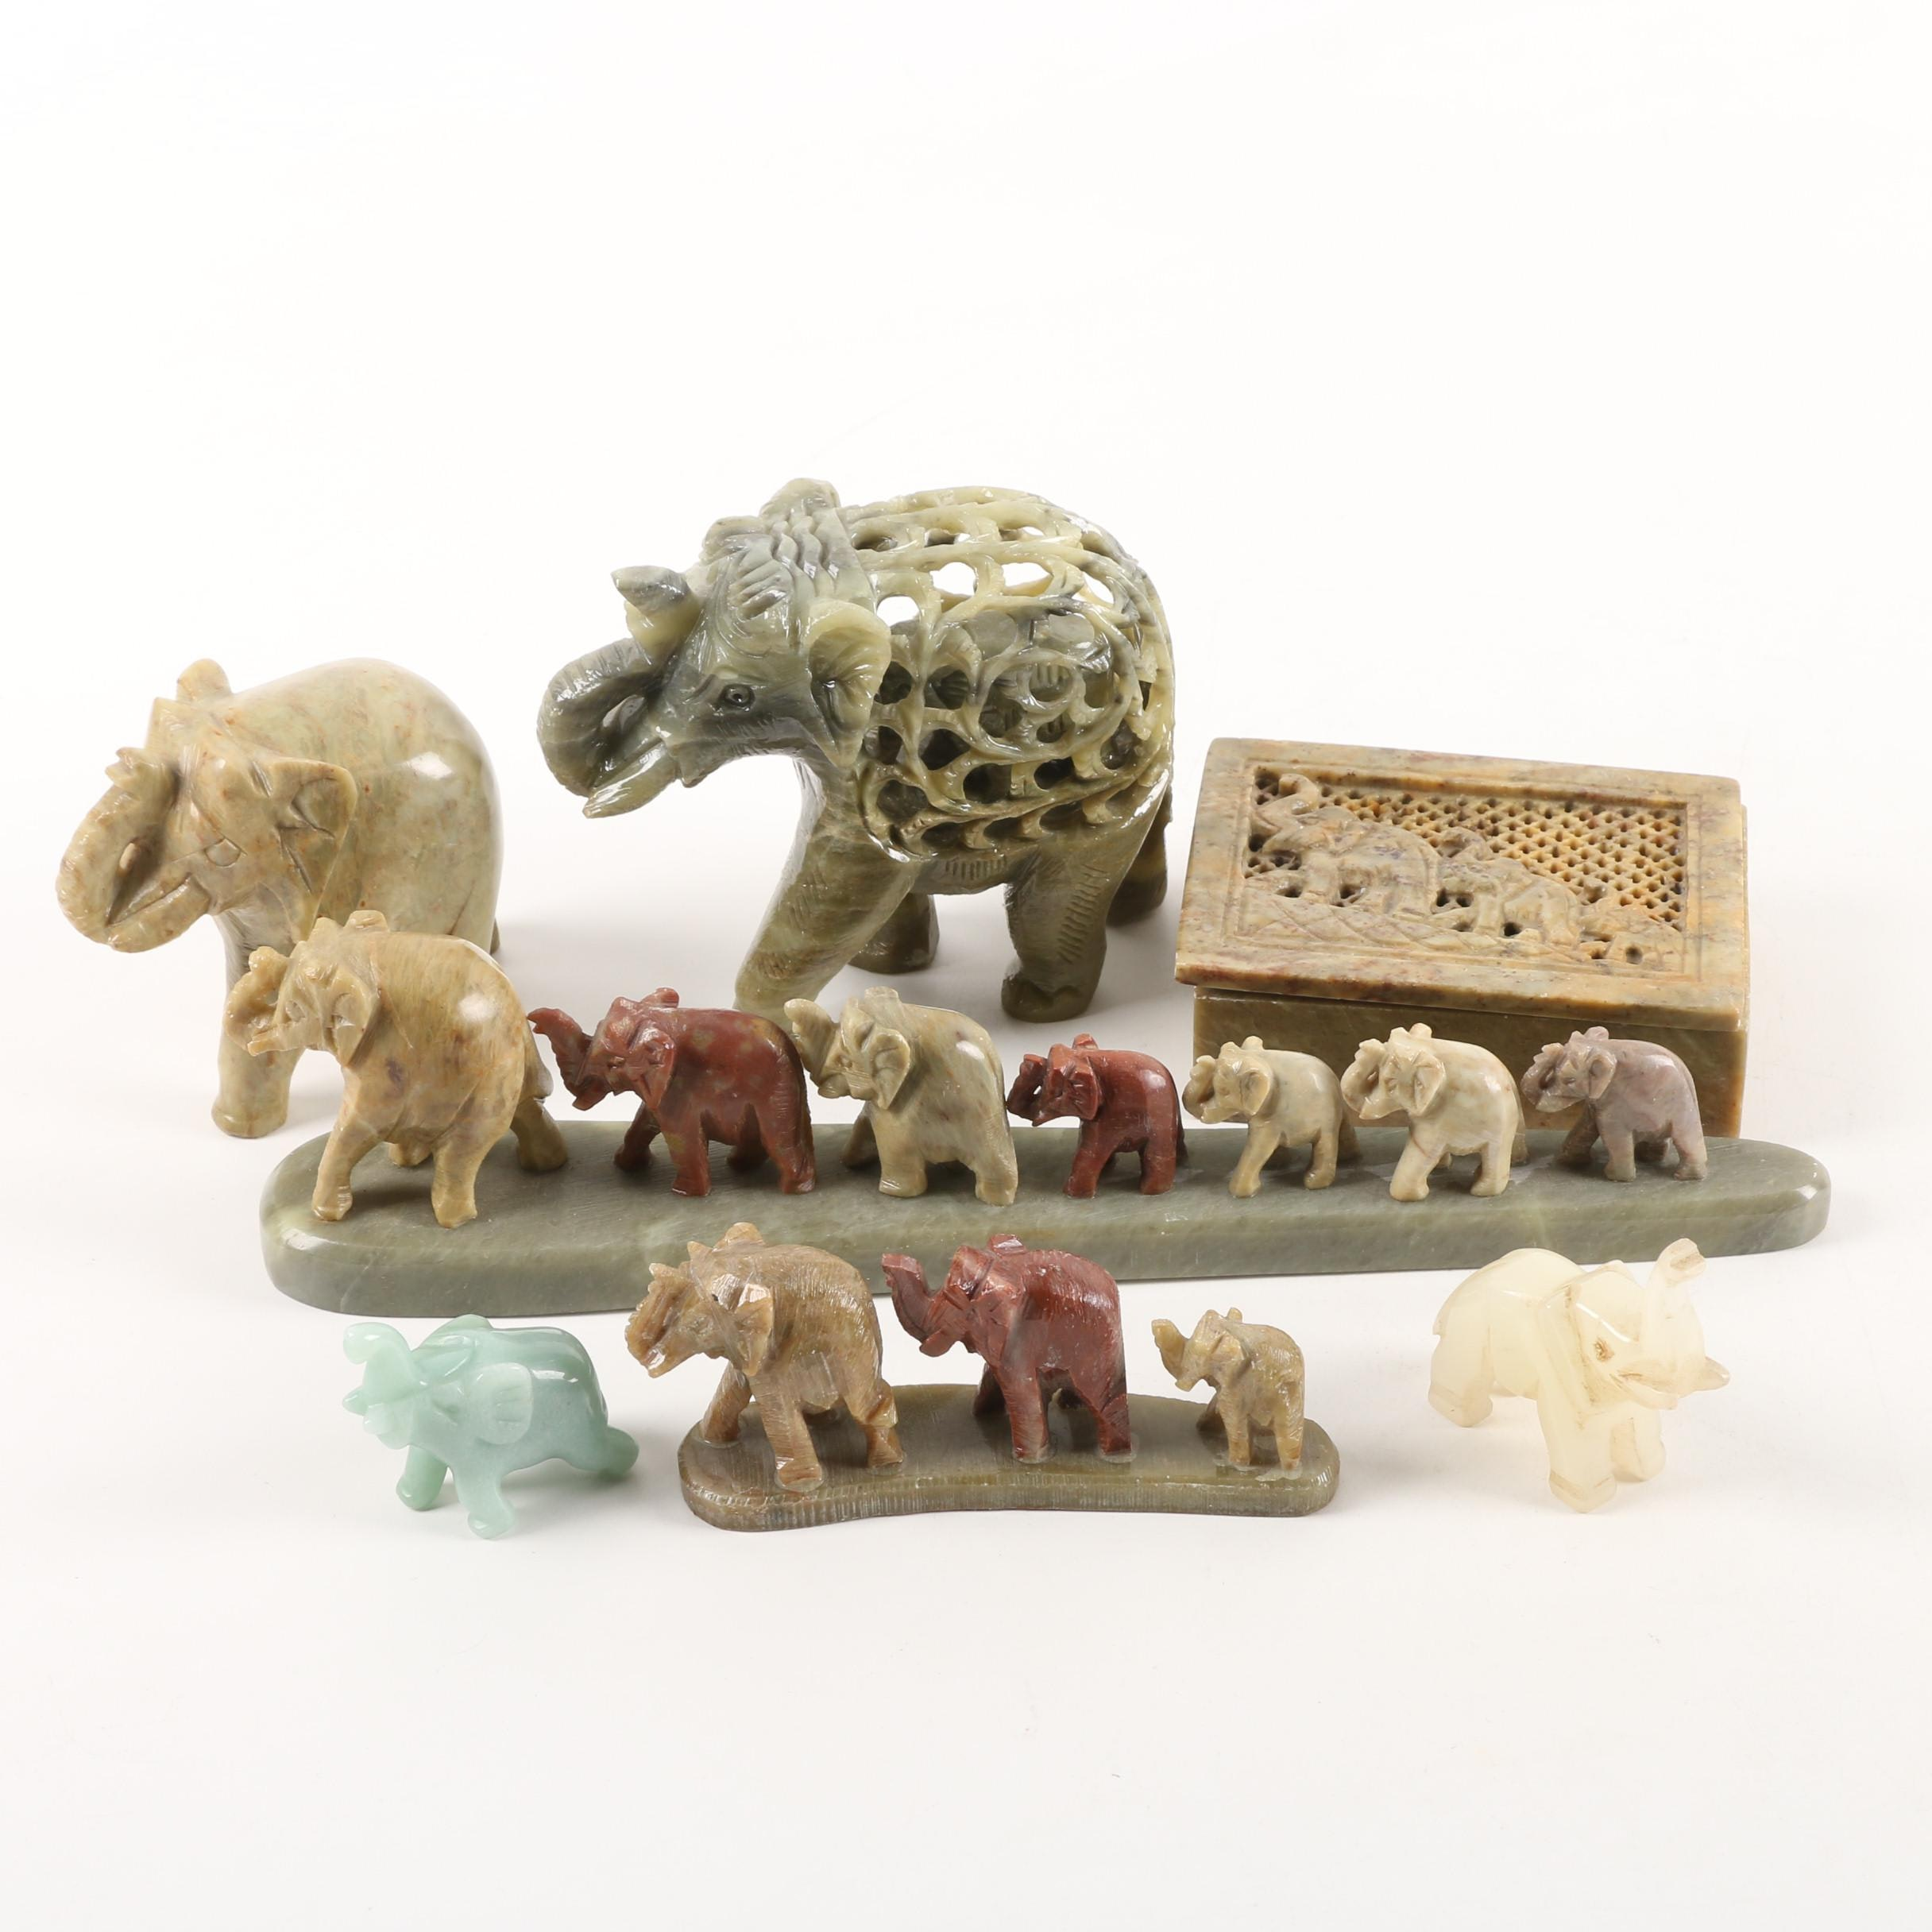 Vintage Carved Stone Elephant Figurines and Trinket Box